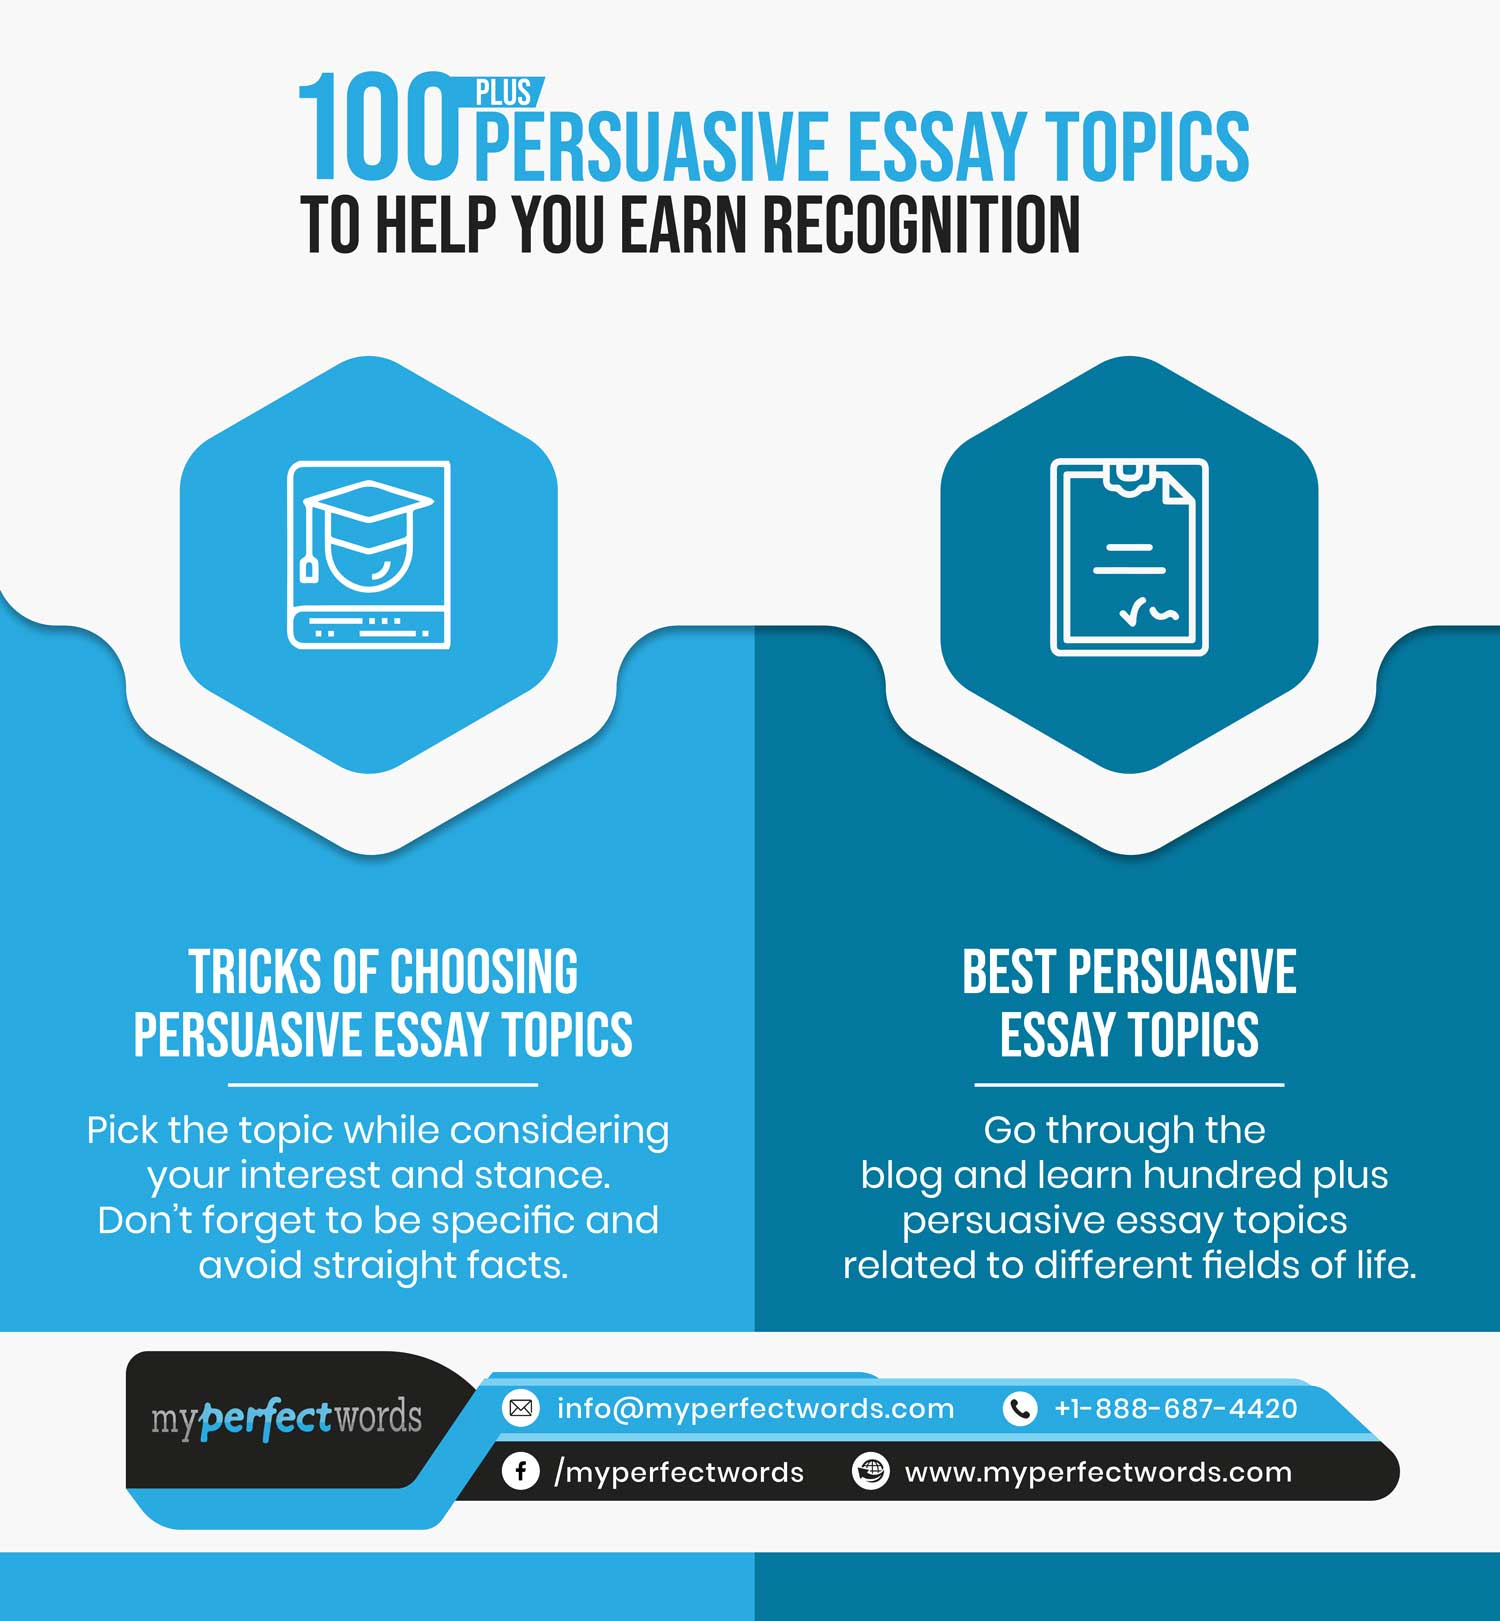 Expository Essay Thesis Statement  Examples Of Proposal Essays also Position Paper Essay  Interesting Persuasive Essay Topics Ideas For  Fifth Business Essays